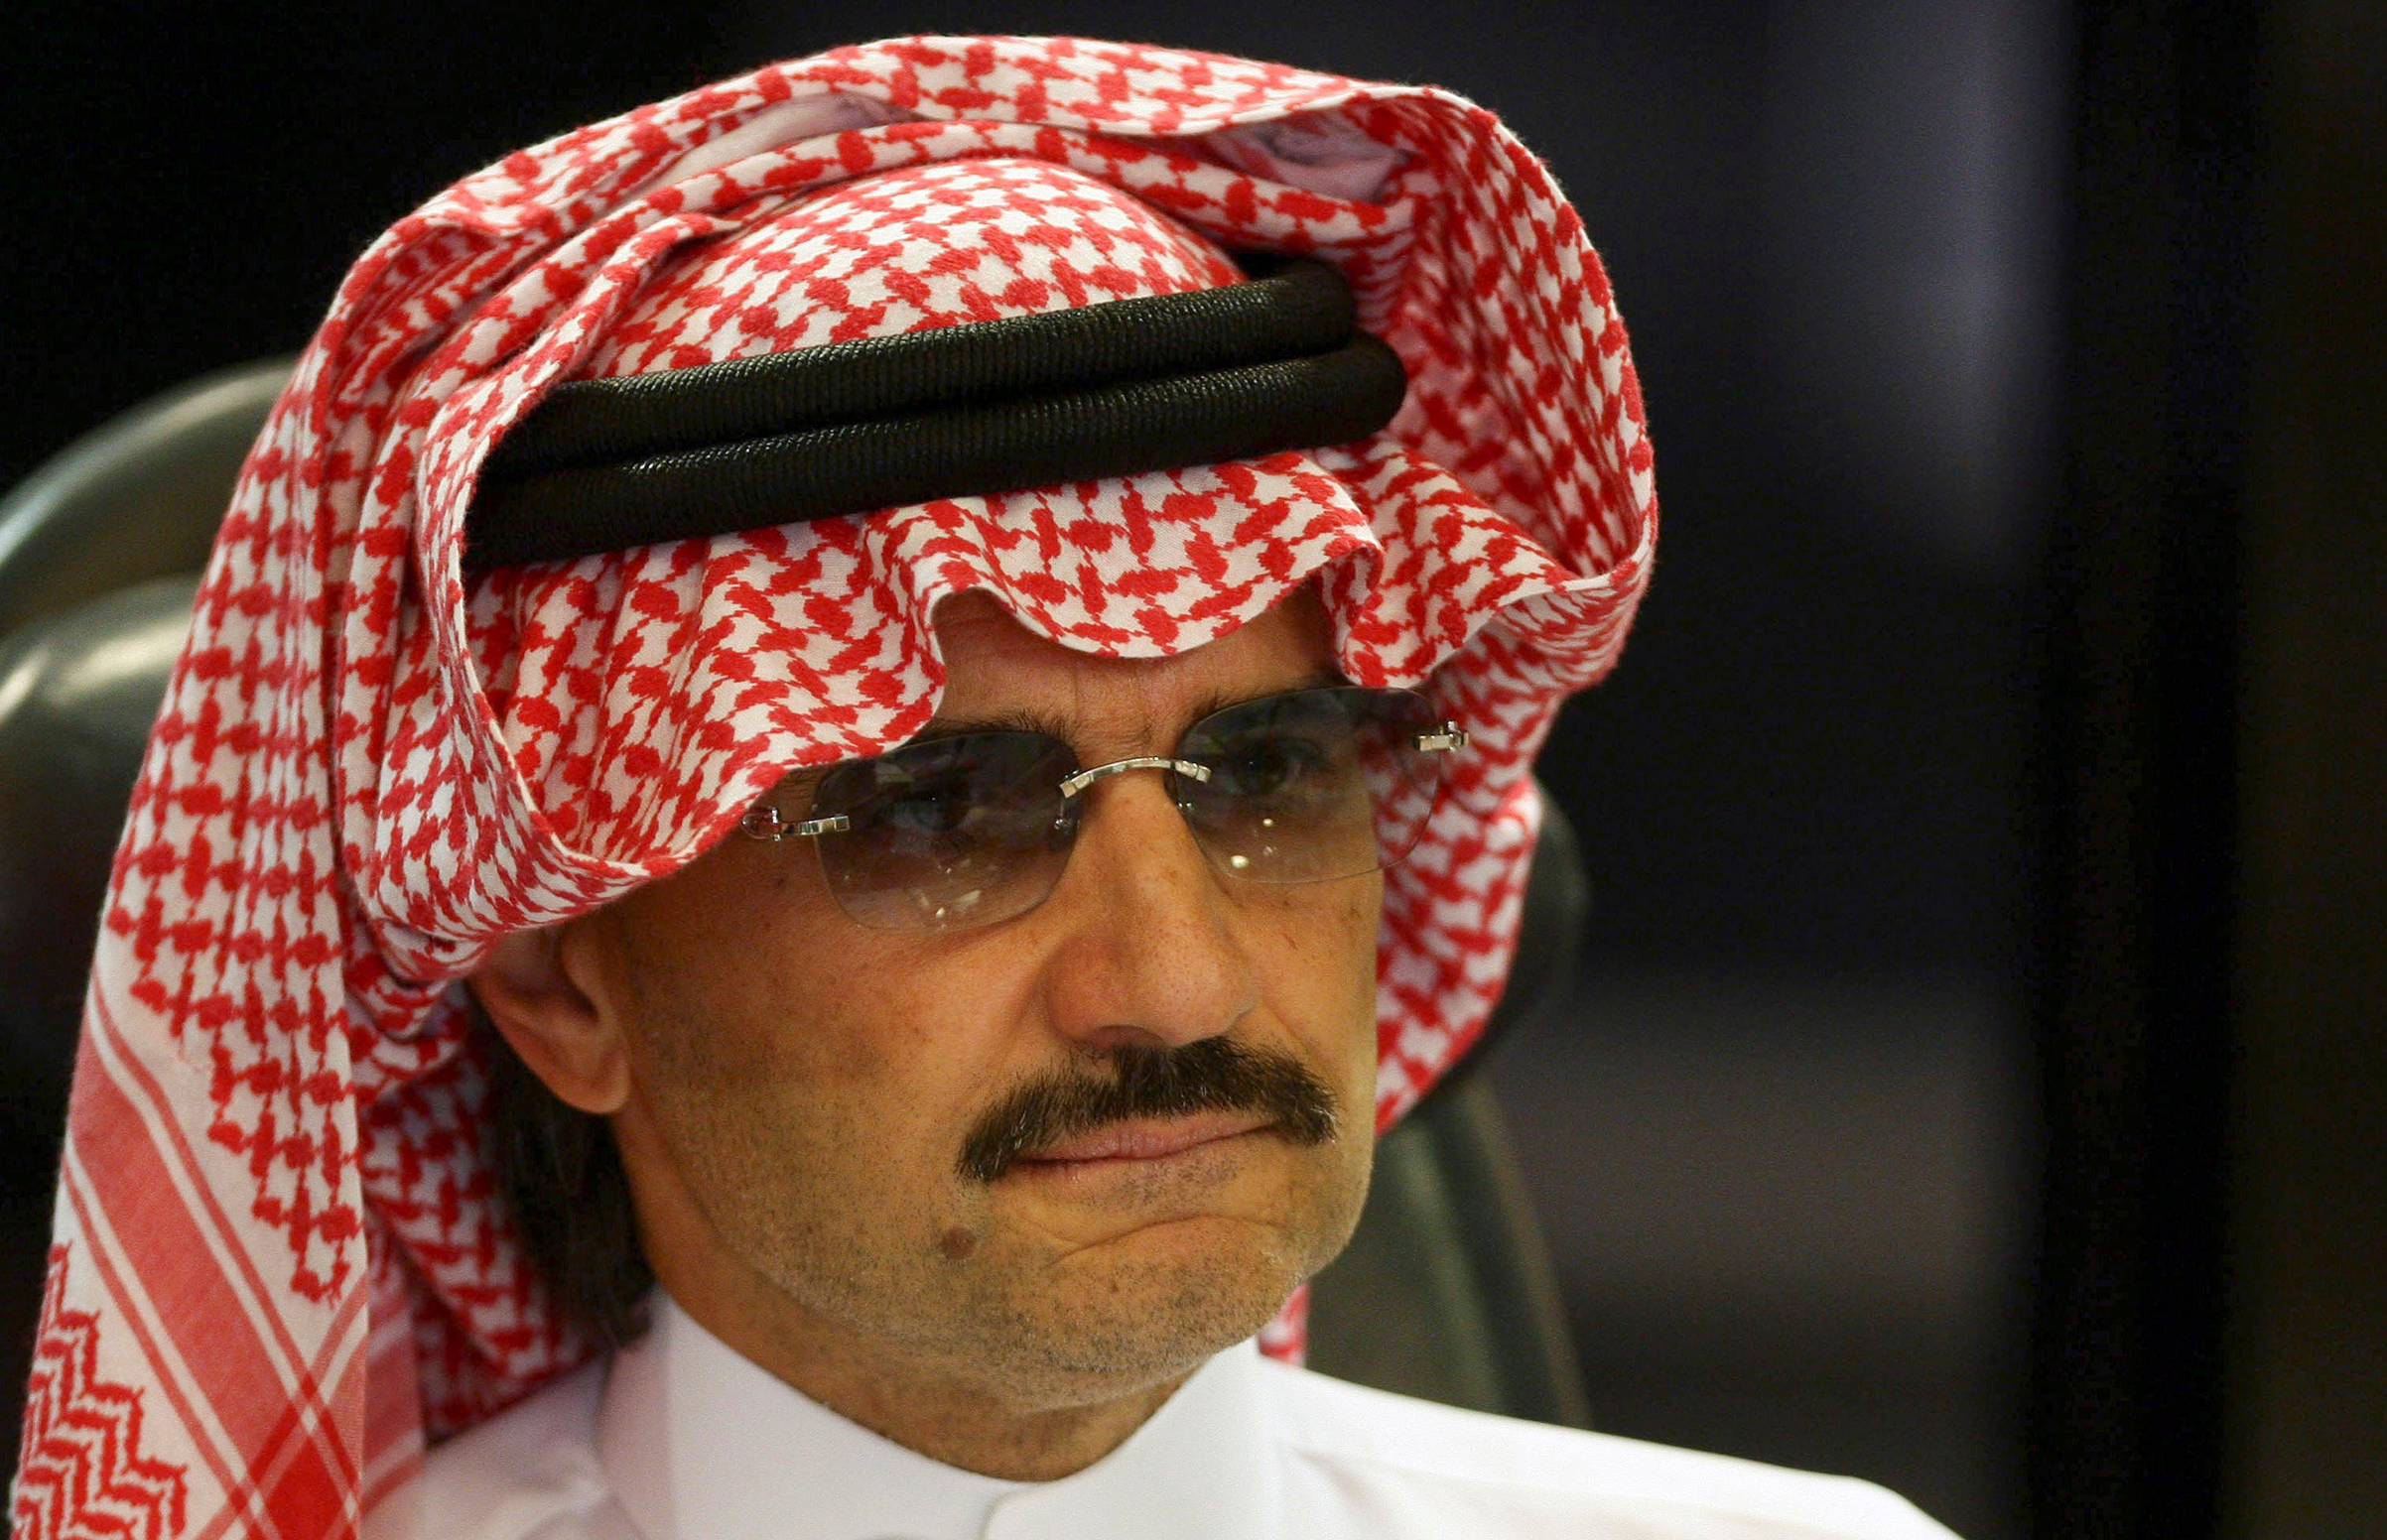 Saudi Prince Alwaleed bin Talal attends a news conference in Riyadh, Saudi Arabia, in August 2009.